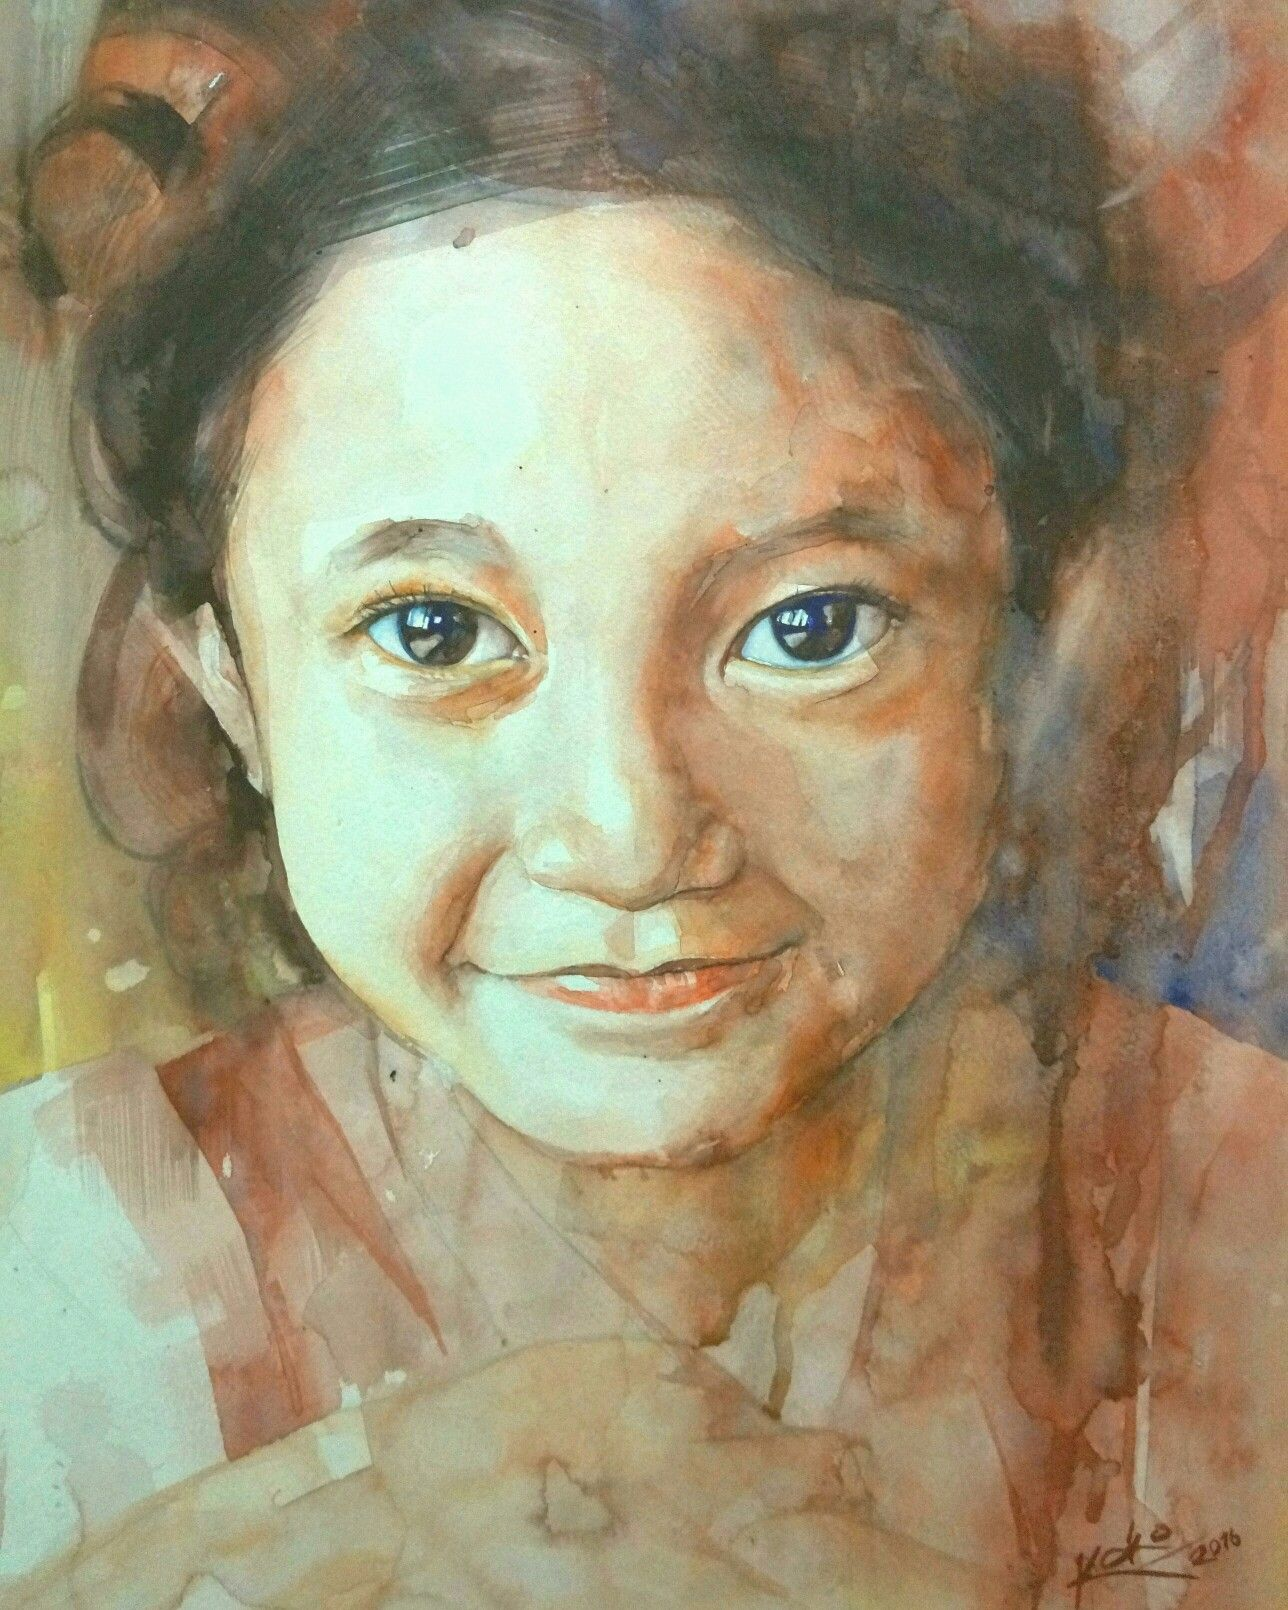 Watercolor painting by Koko Poniman